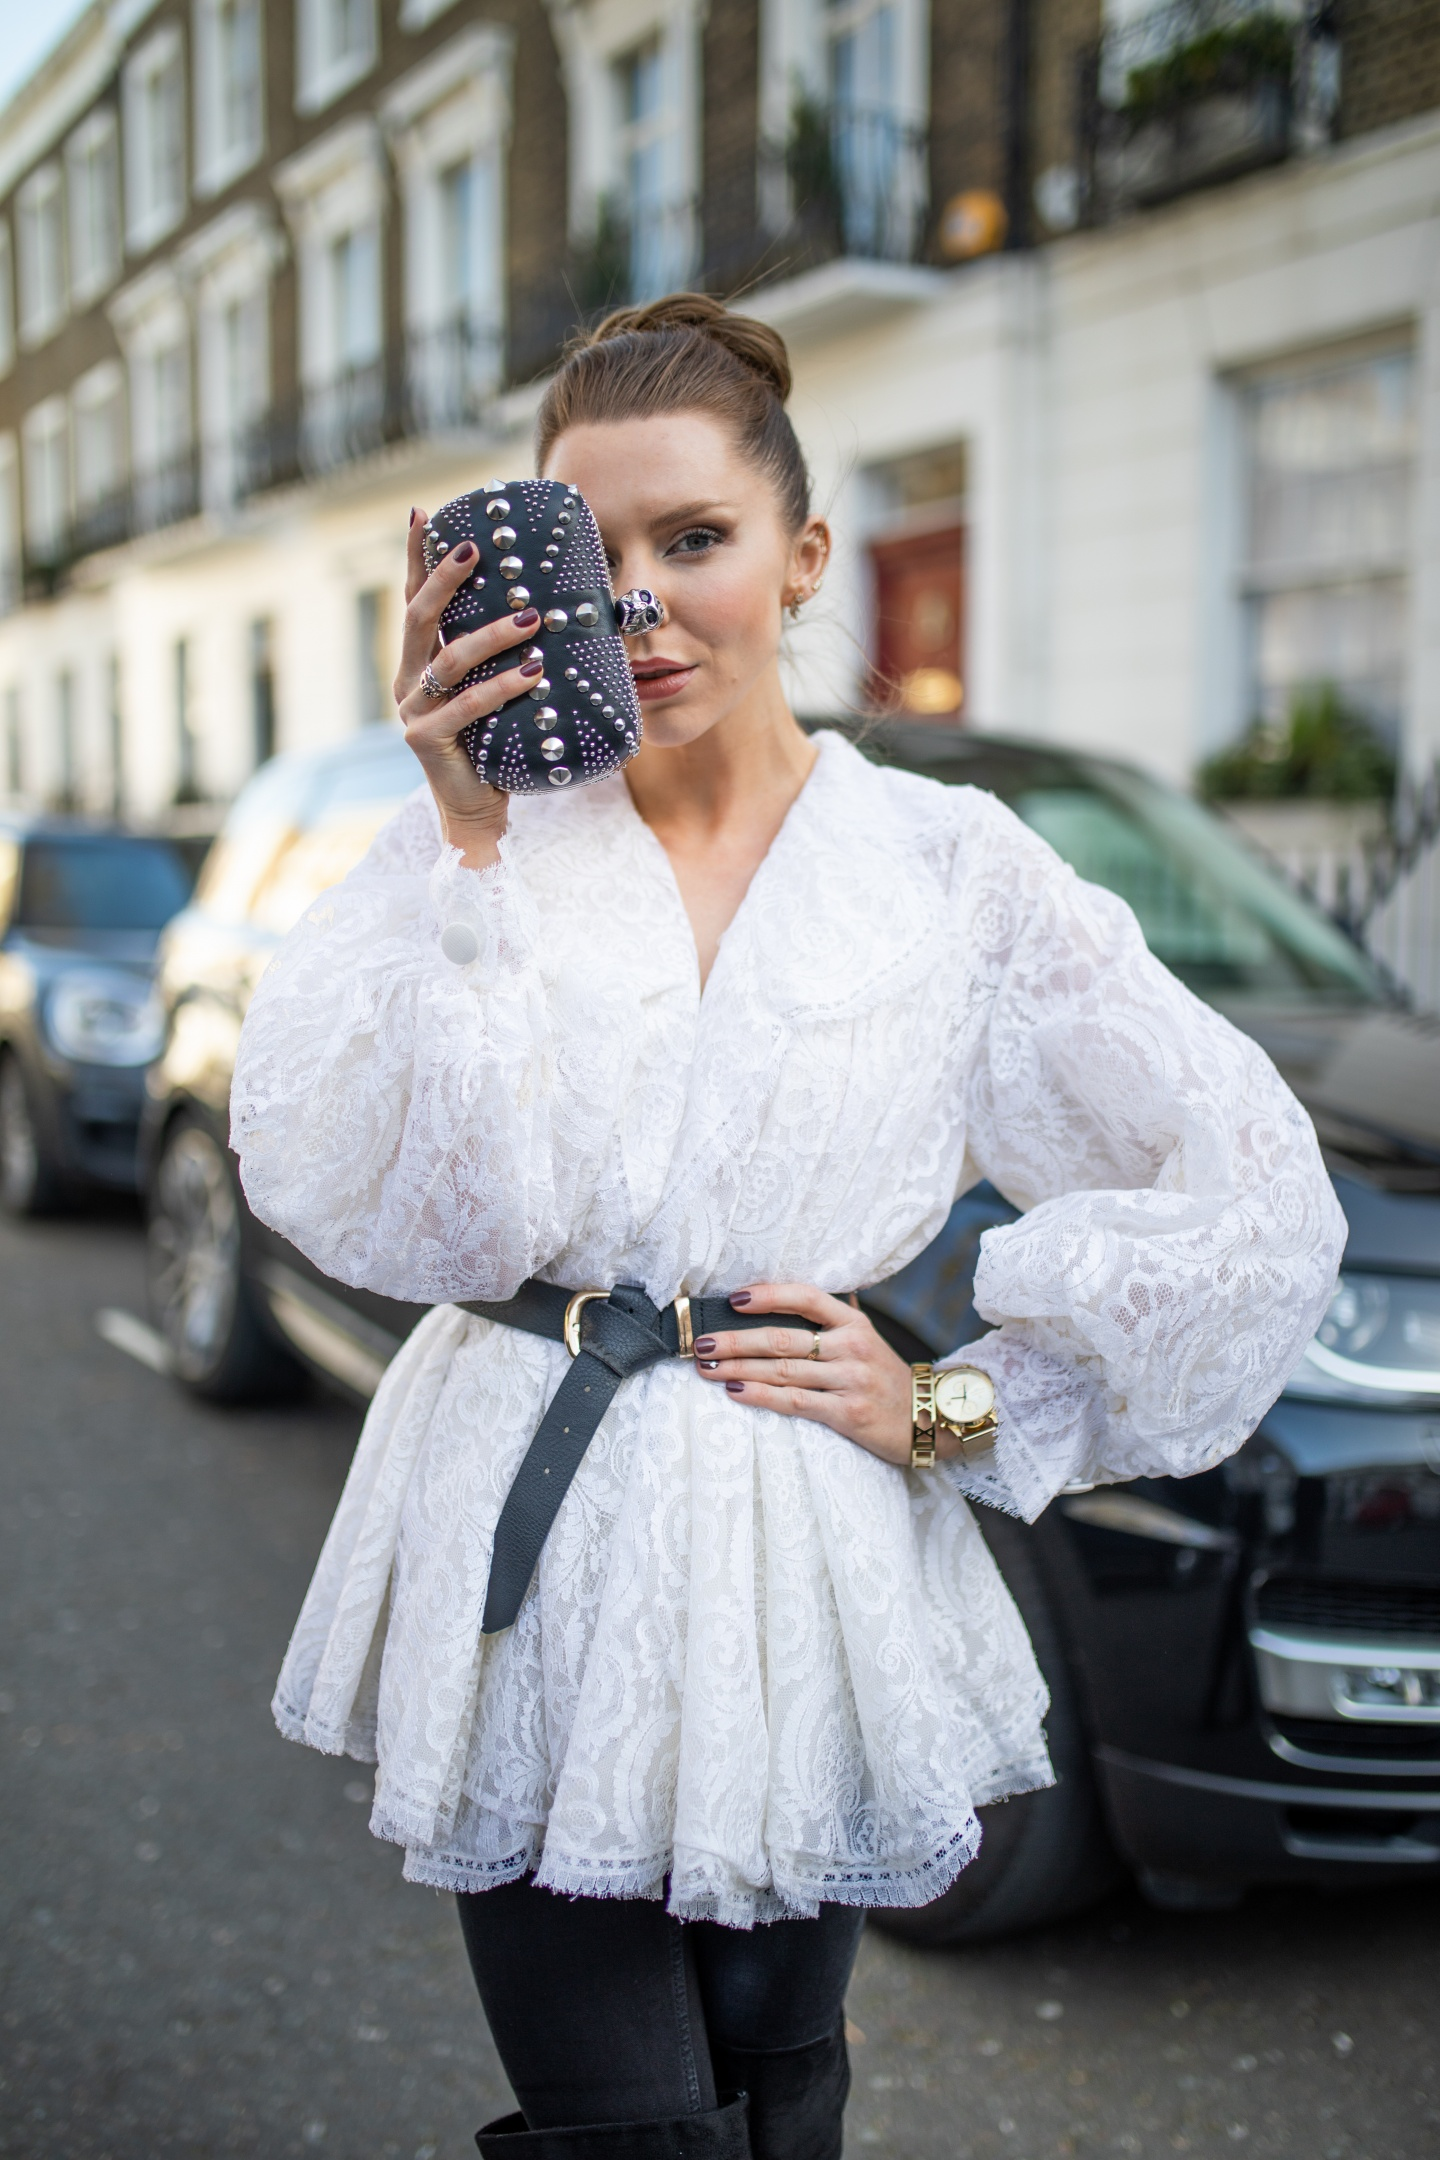 london fashion week, lfw, london fashion week street style, fashion, ss19, alexander mcqueen, christian dior, vintage dior, dior , vintage dior blouse, designer exchange